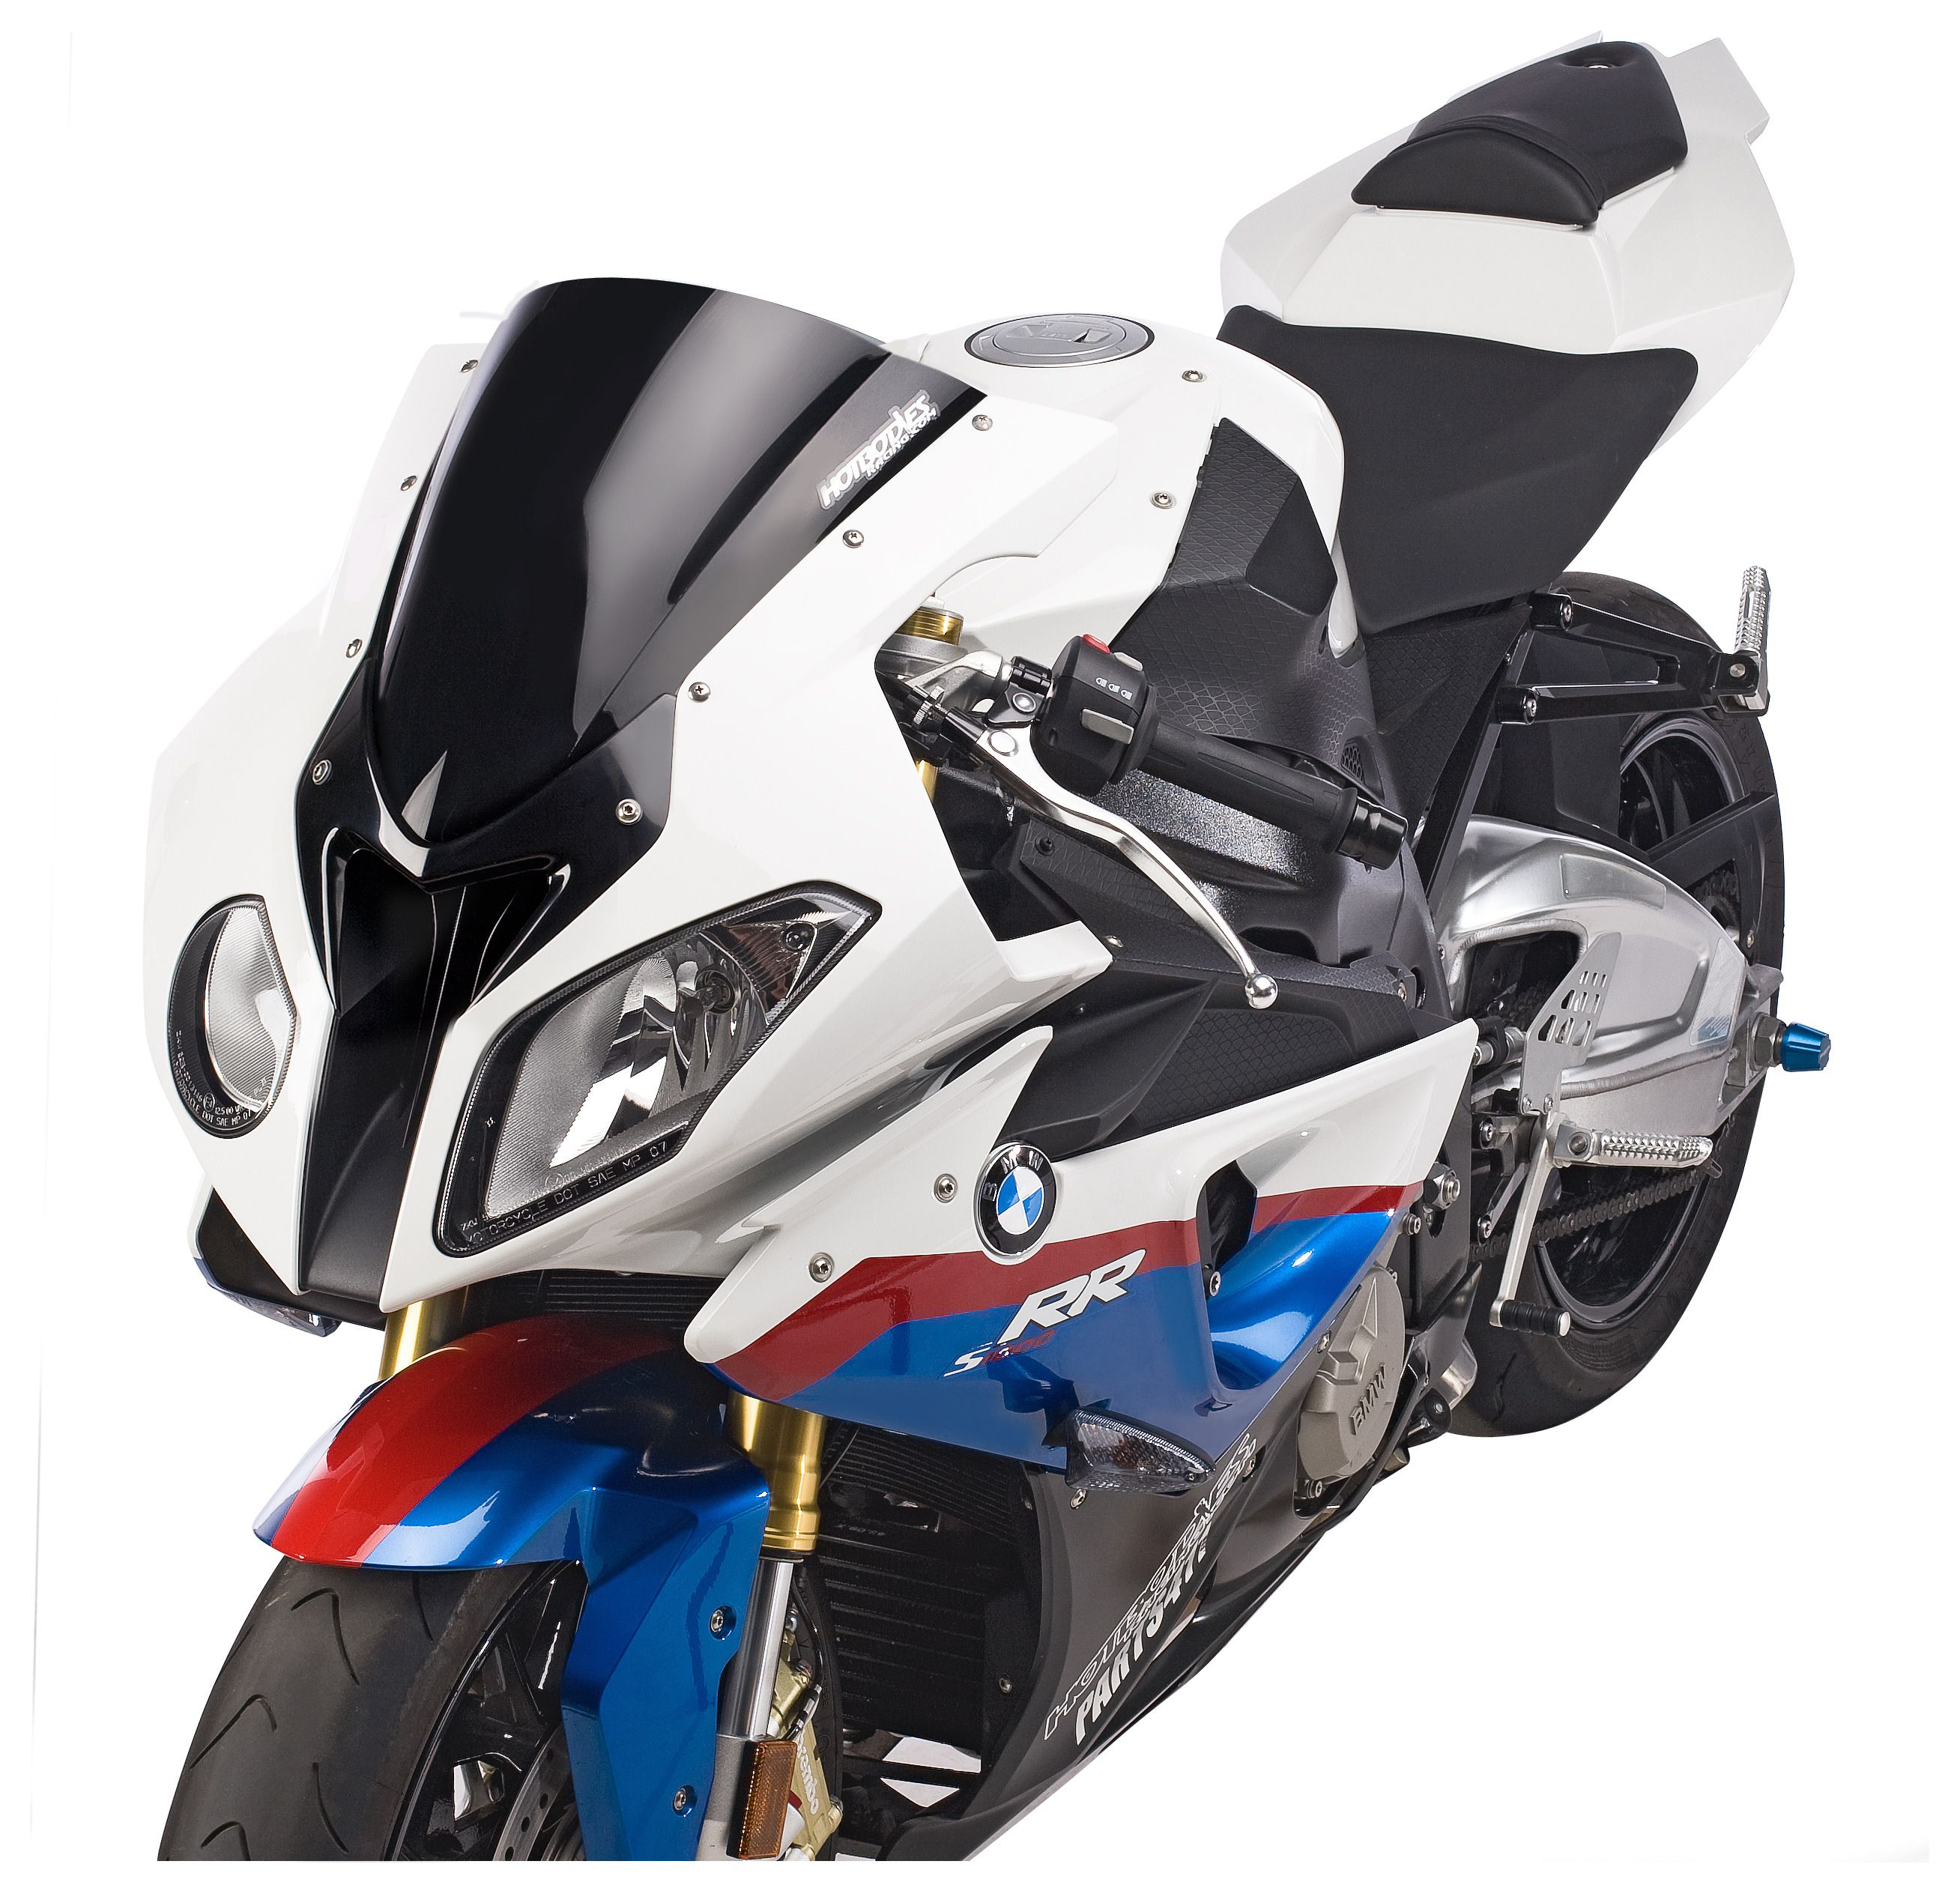 Hotbodies Gp Windscreen Bmw S1000rr 2010 2014 10 1000 Off